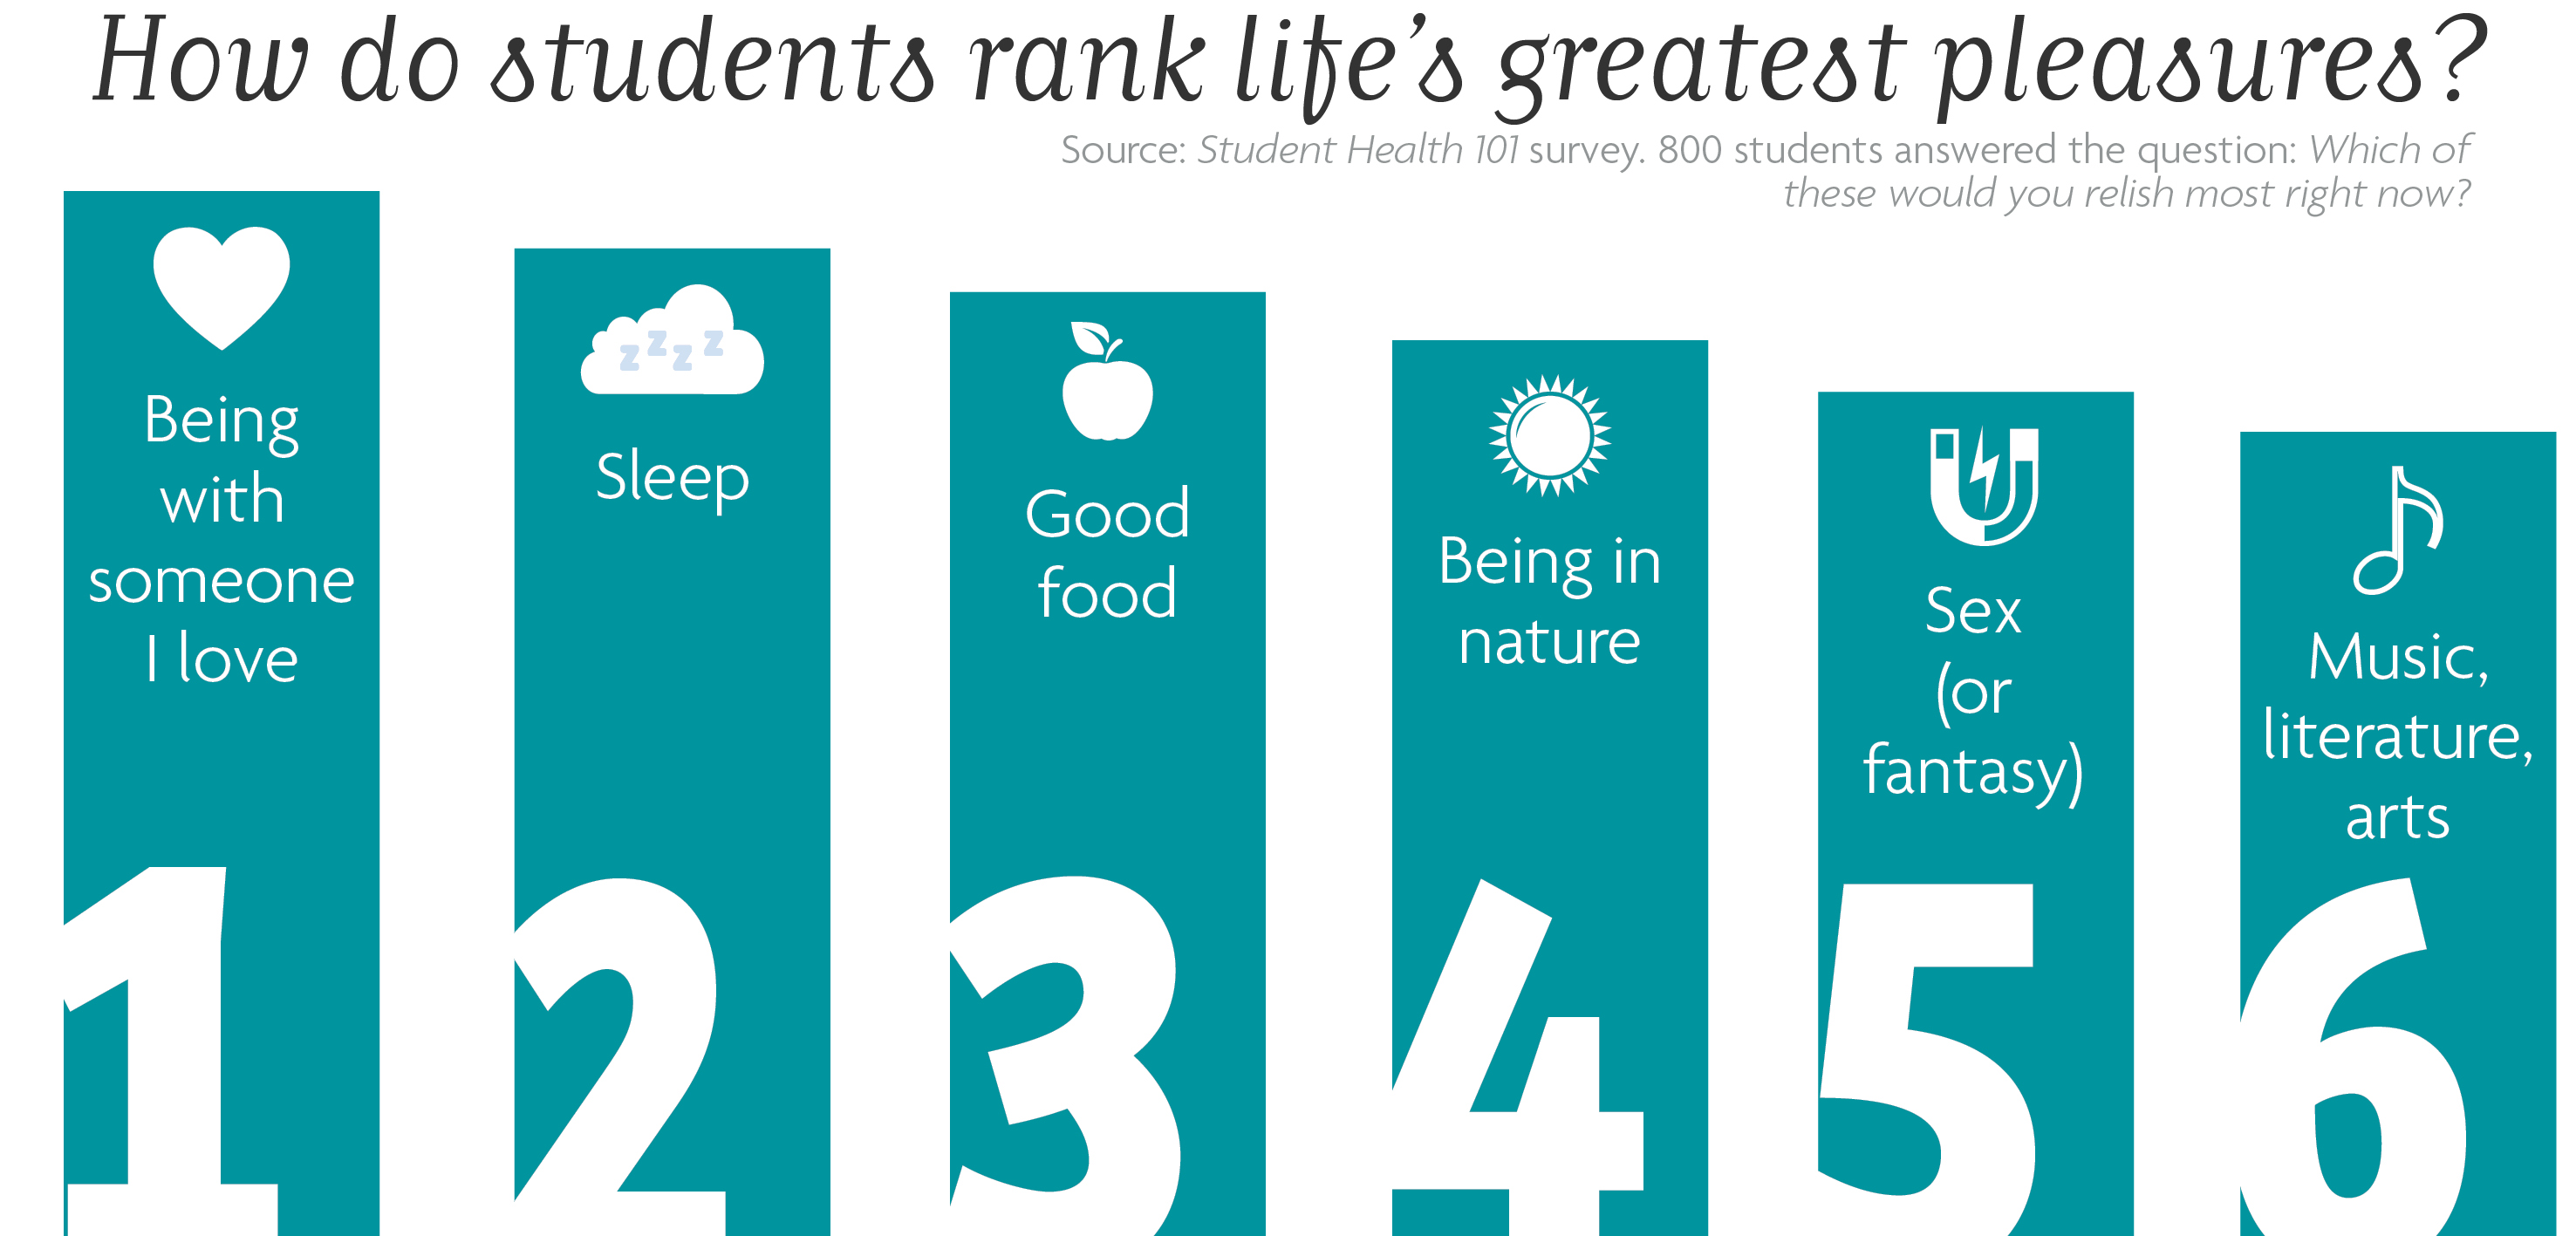 How do students rank life's greatest pleasures? Source: Student Health 101 survey. 800 students answered the question: Which of these would you relish most right now? 1. Being with someone I love 2. Sleep 3. Good food 4. Being in nature 5. Sex (or fantasy) 6. Music, literature, arts